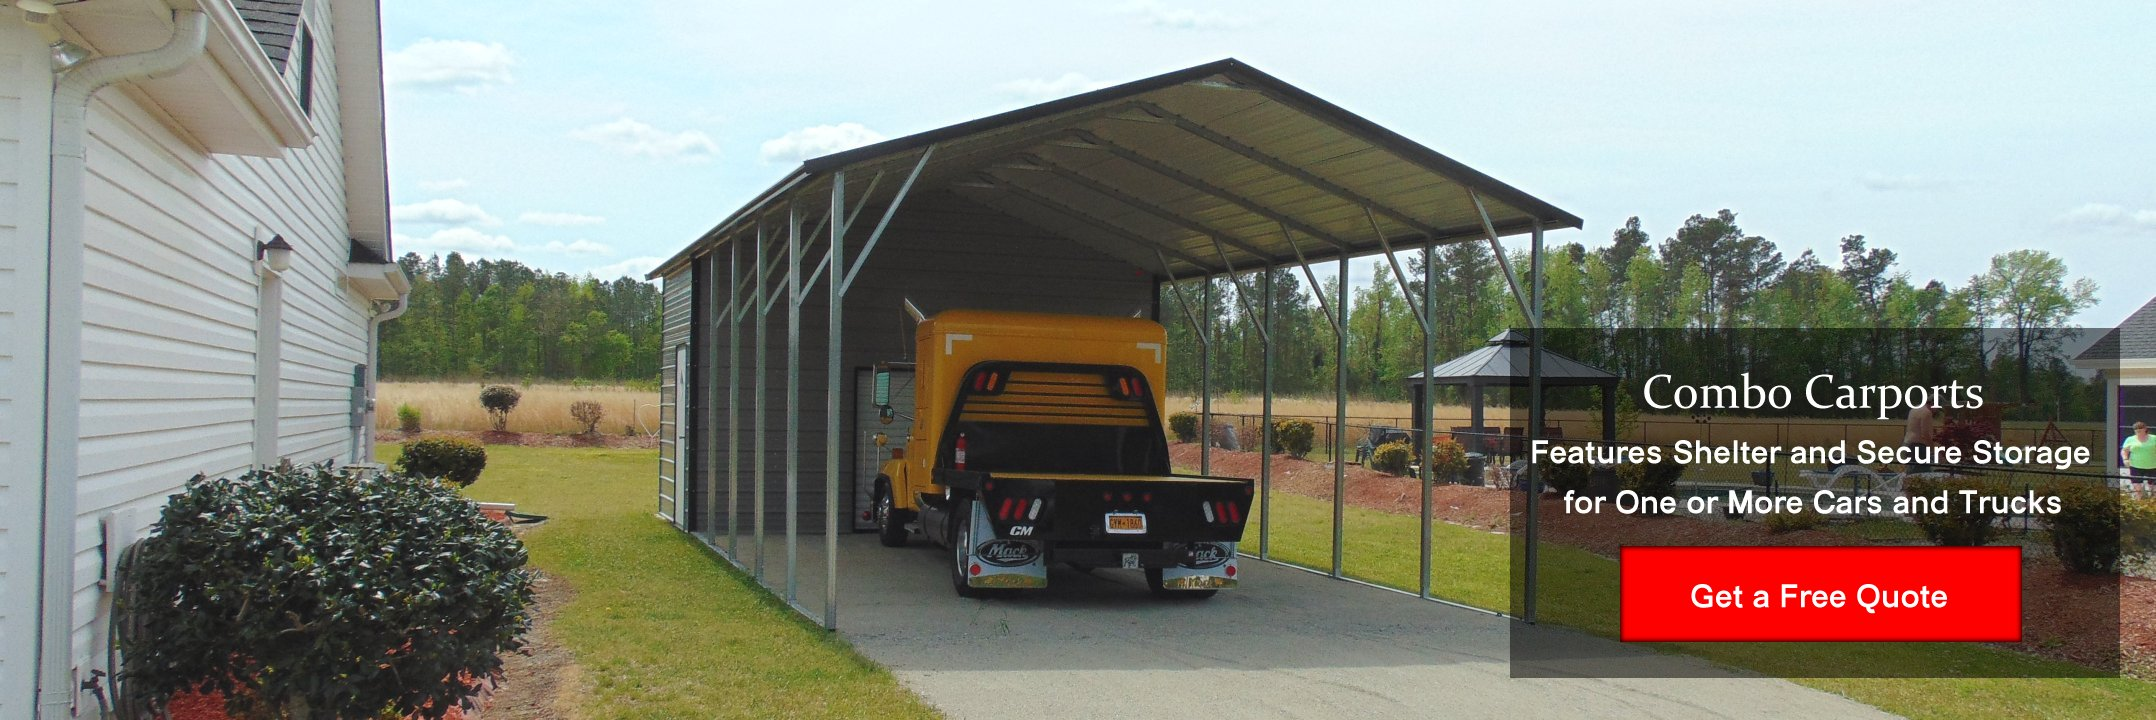 Carports metal garages metal buildings cardinal carports for Carport shop combo